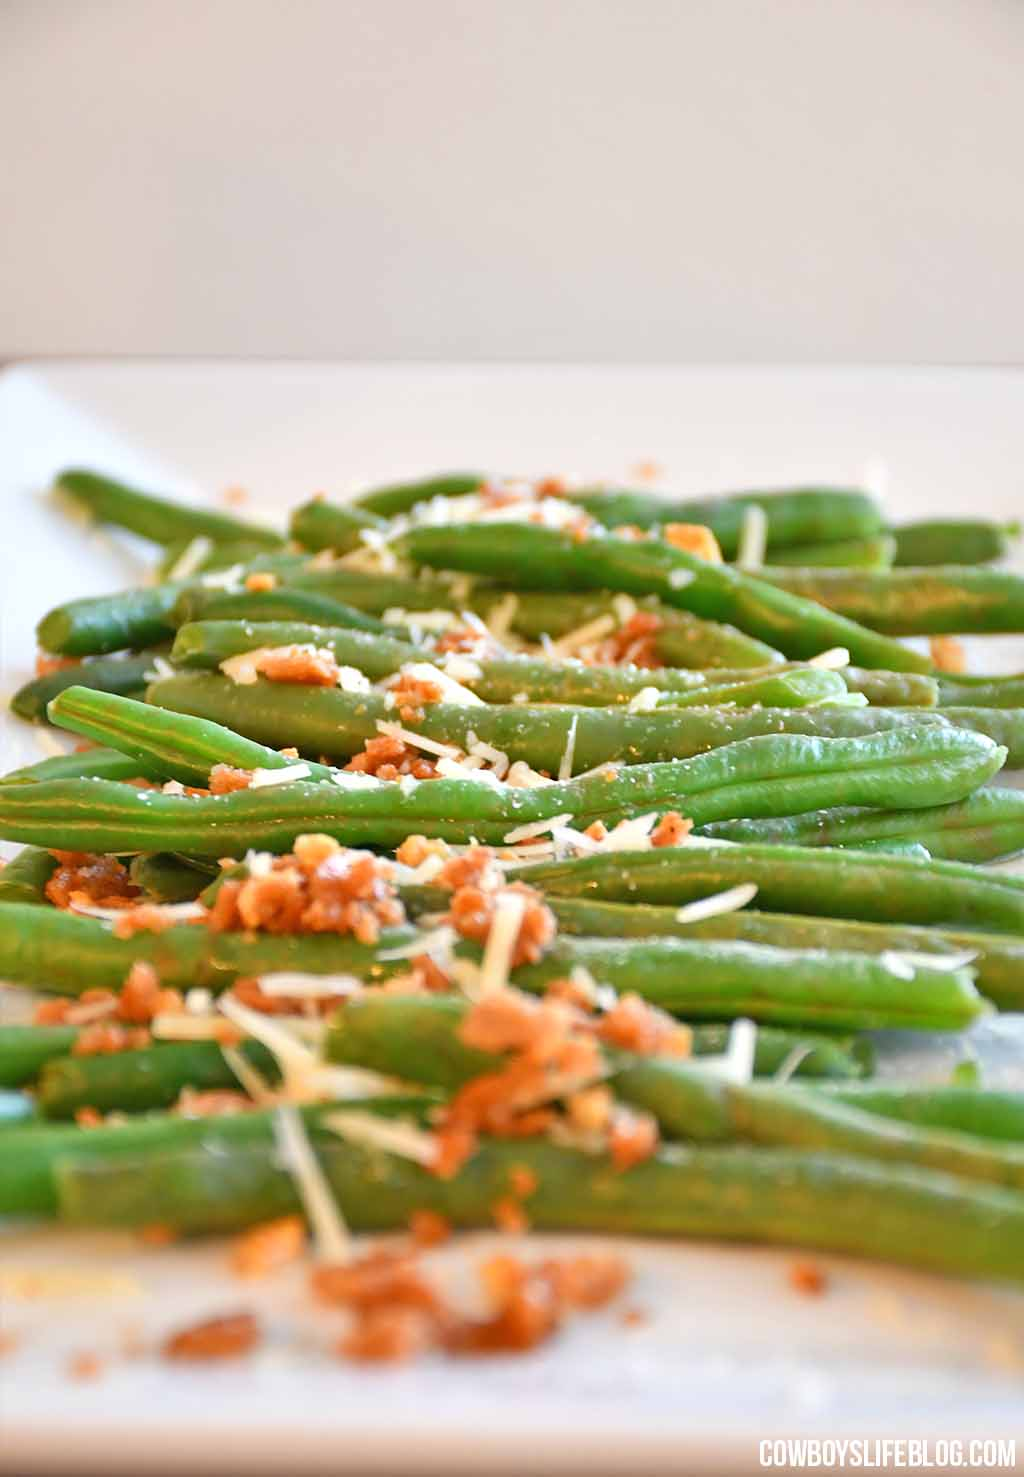 How to Make Roasted Parmesan Green Beans